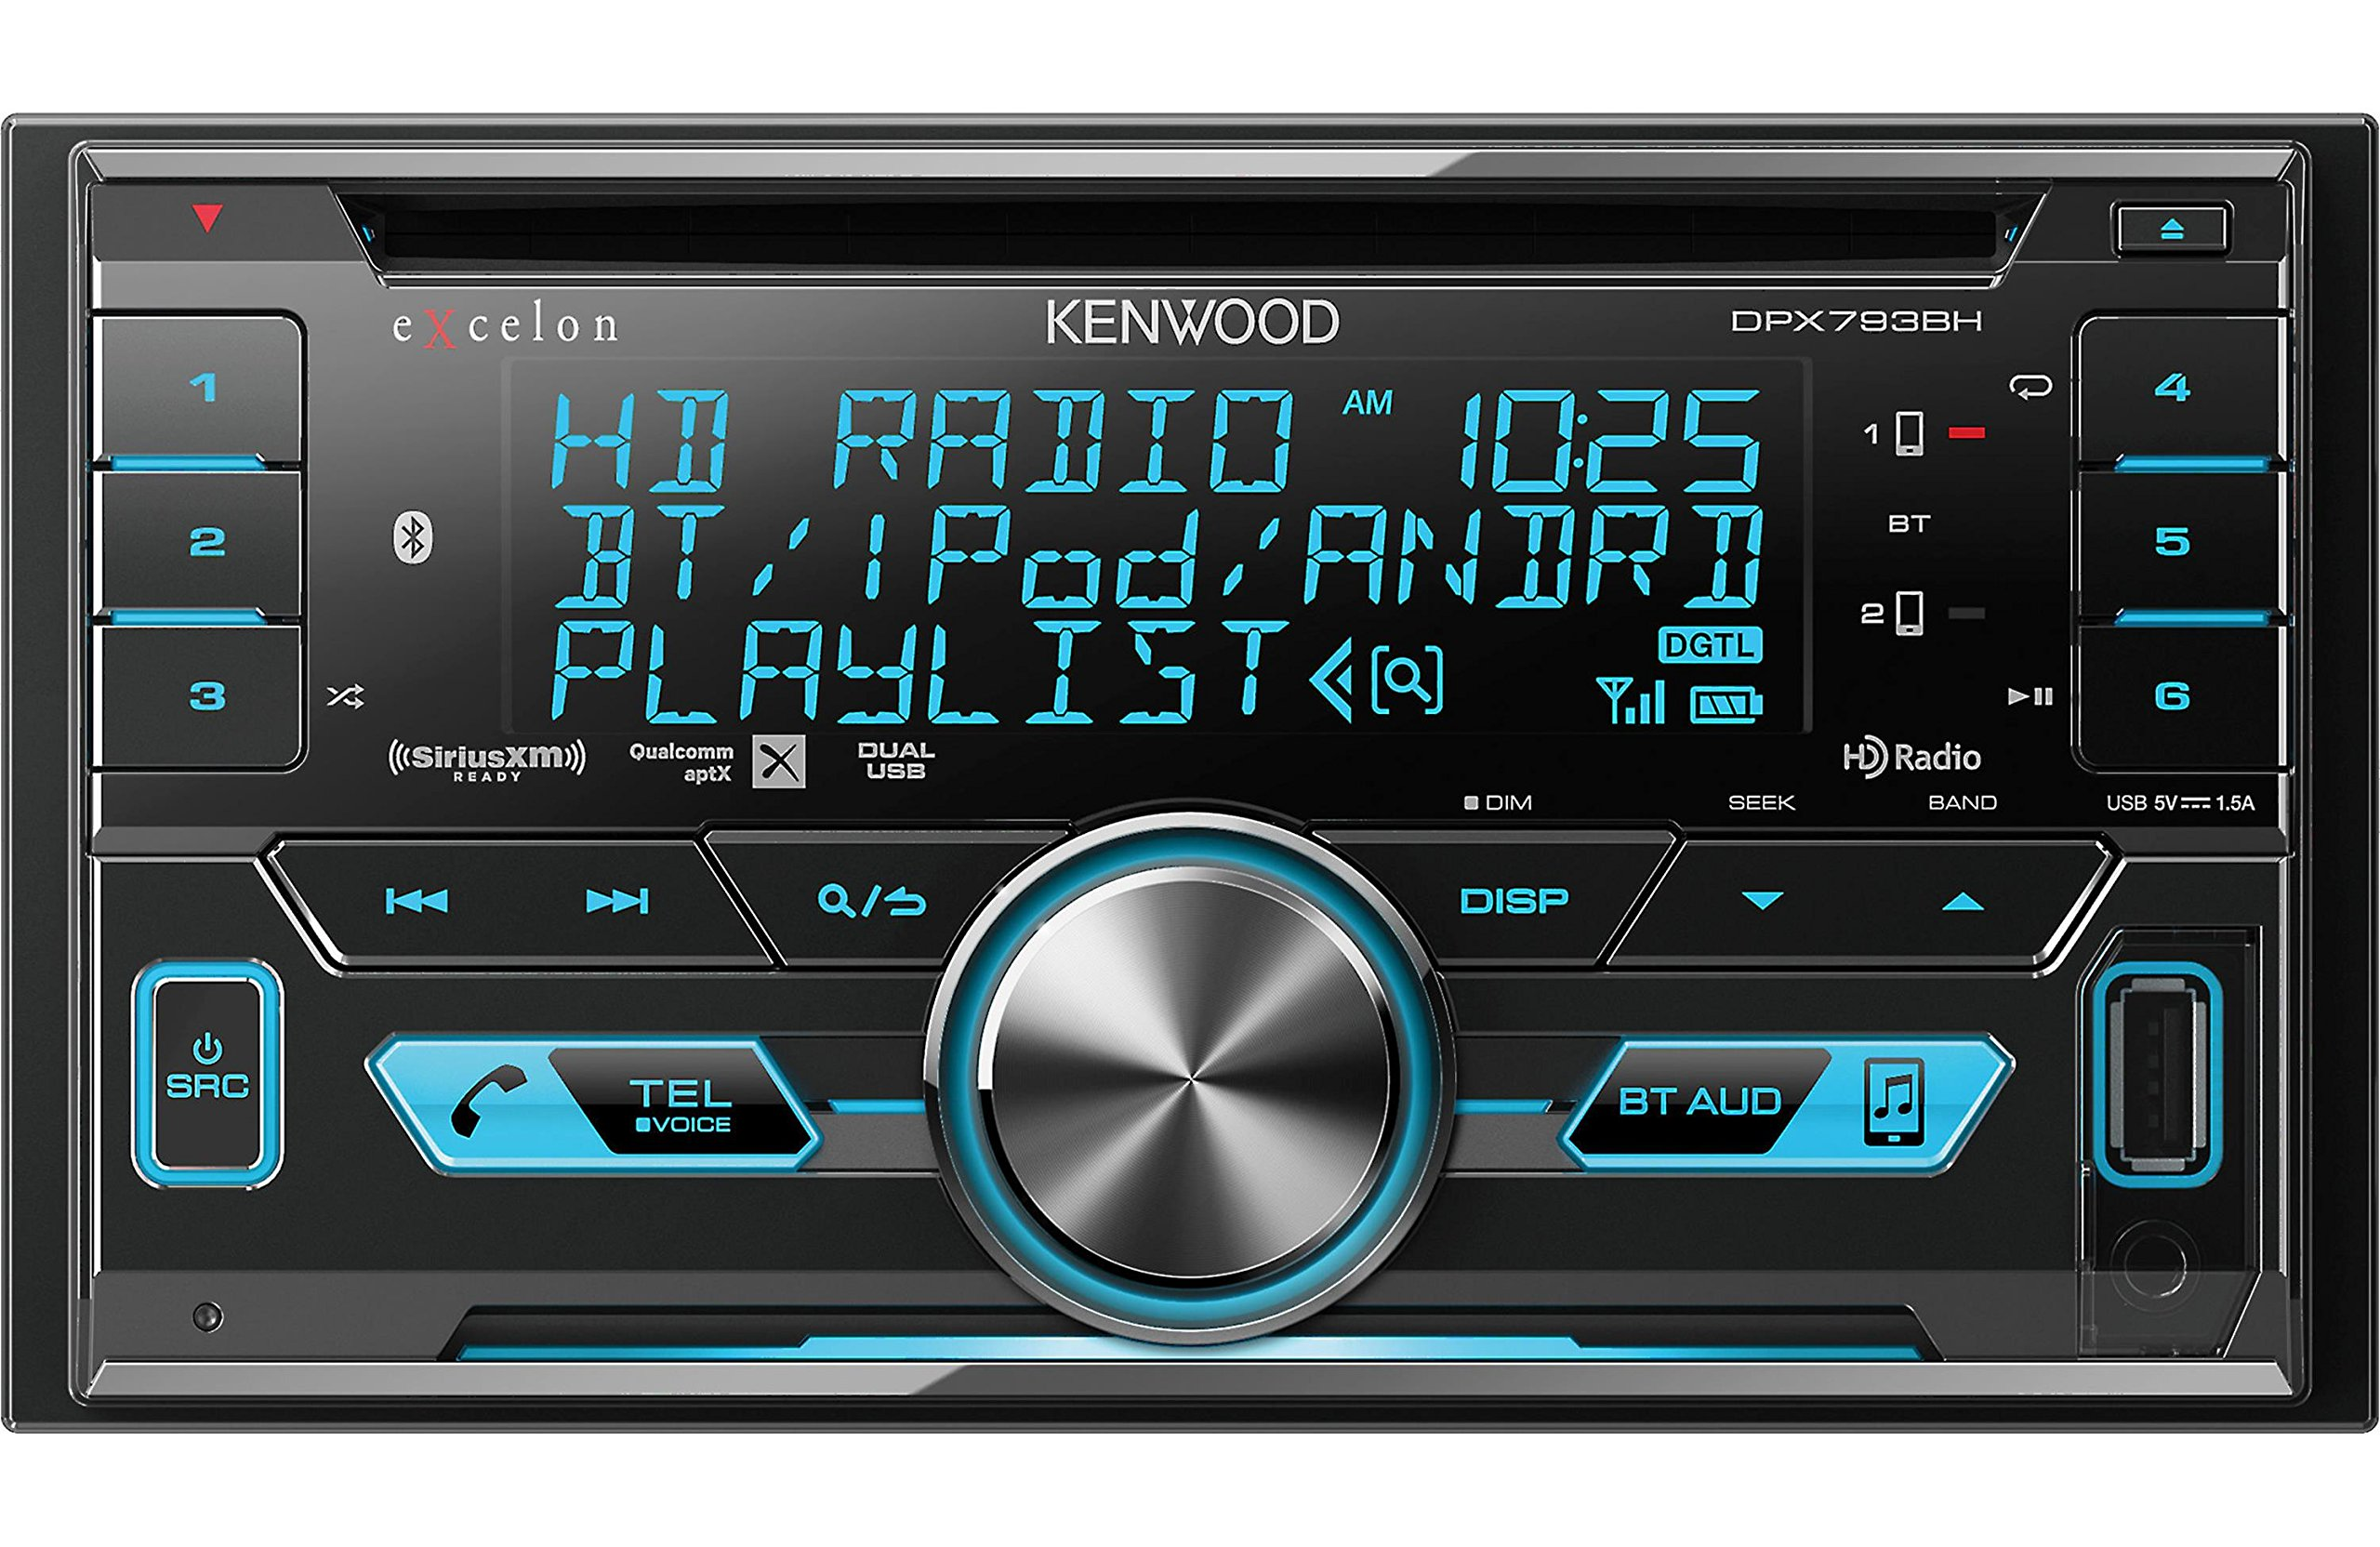 Kenwood Excelon DPX793BH Receiver Bluetooth